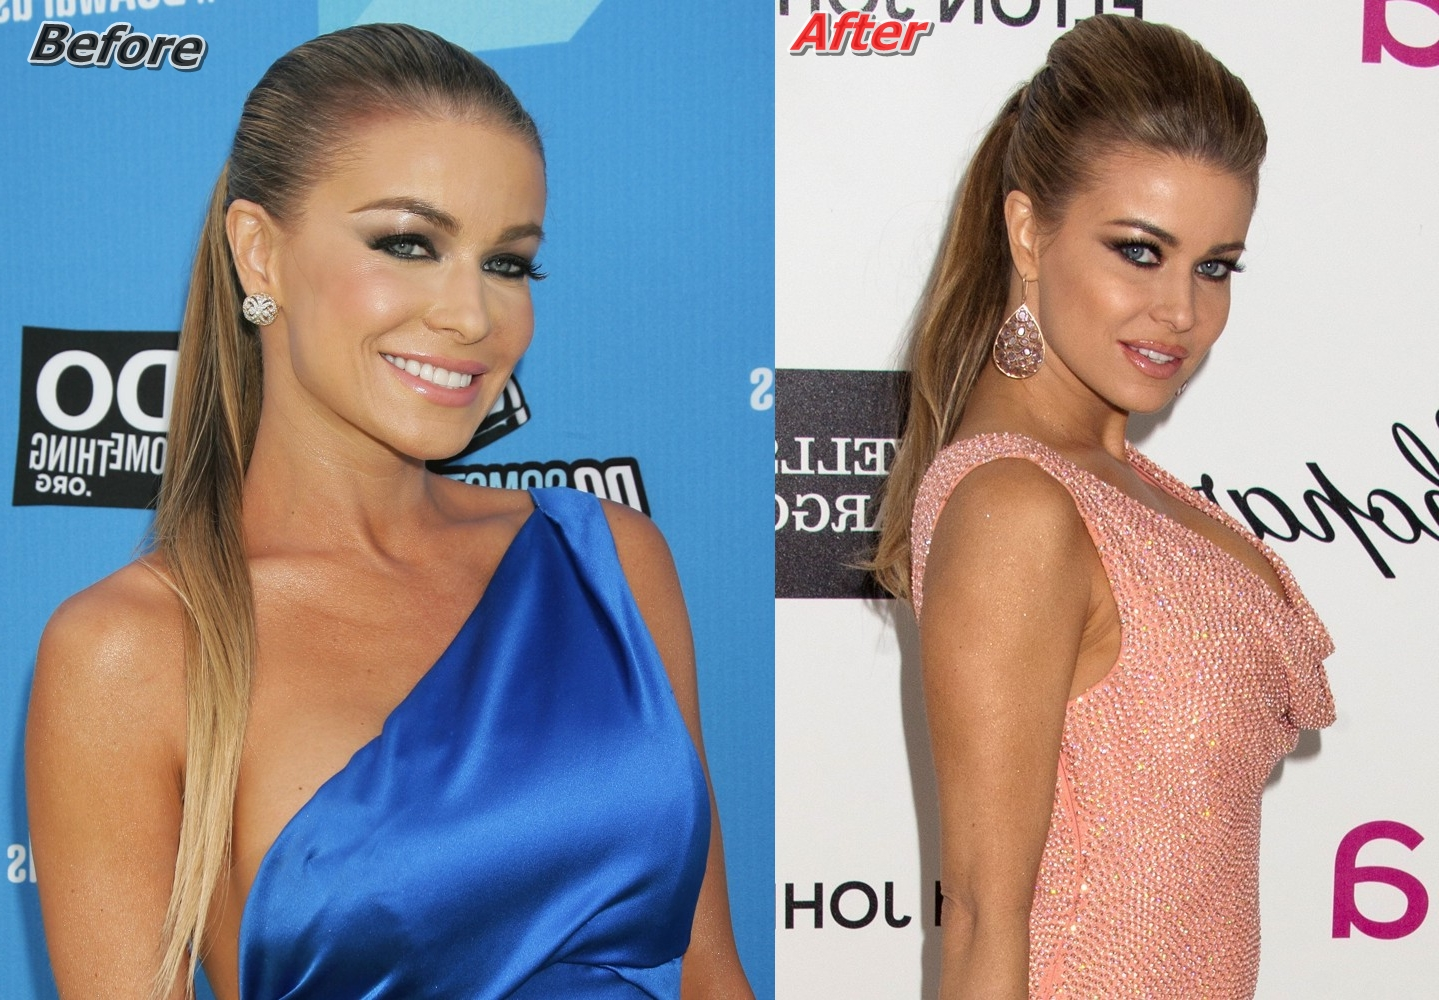 Carmen Electra Breast Implants Before And After Photos1